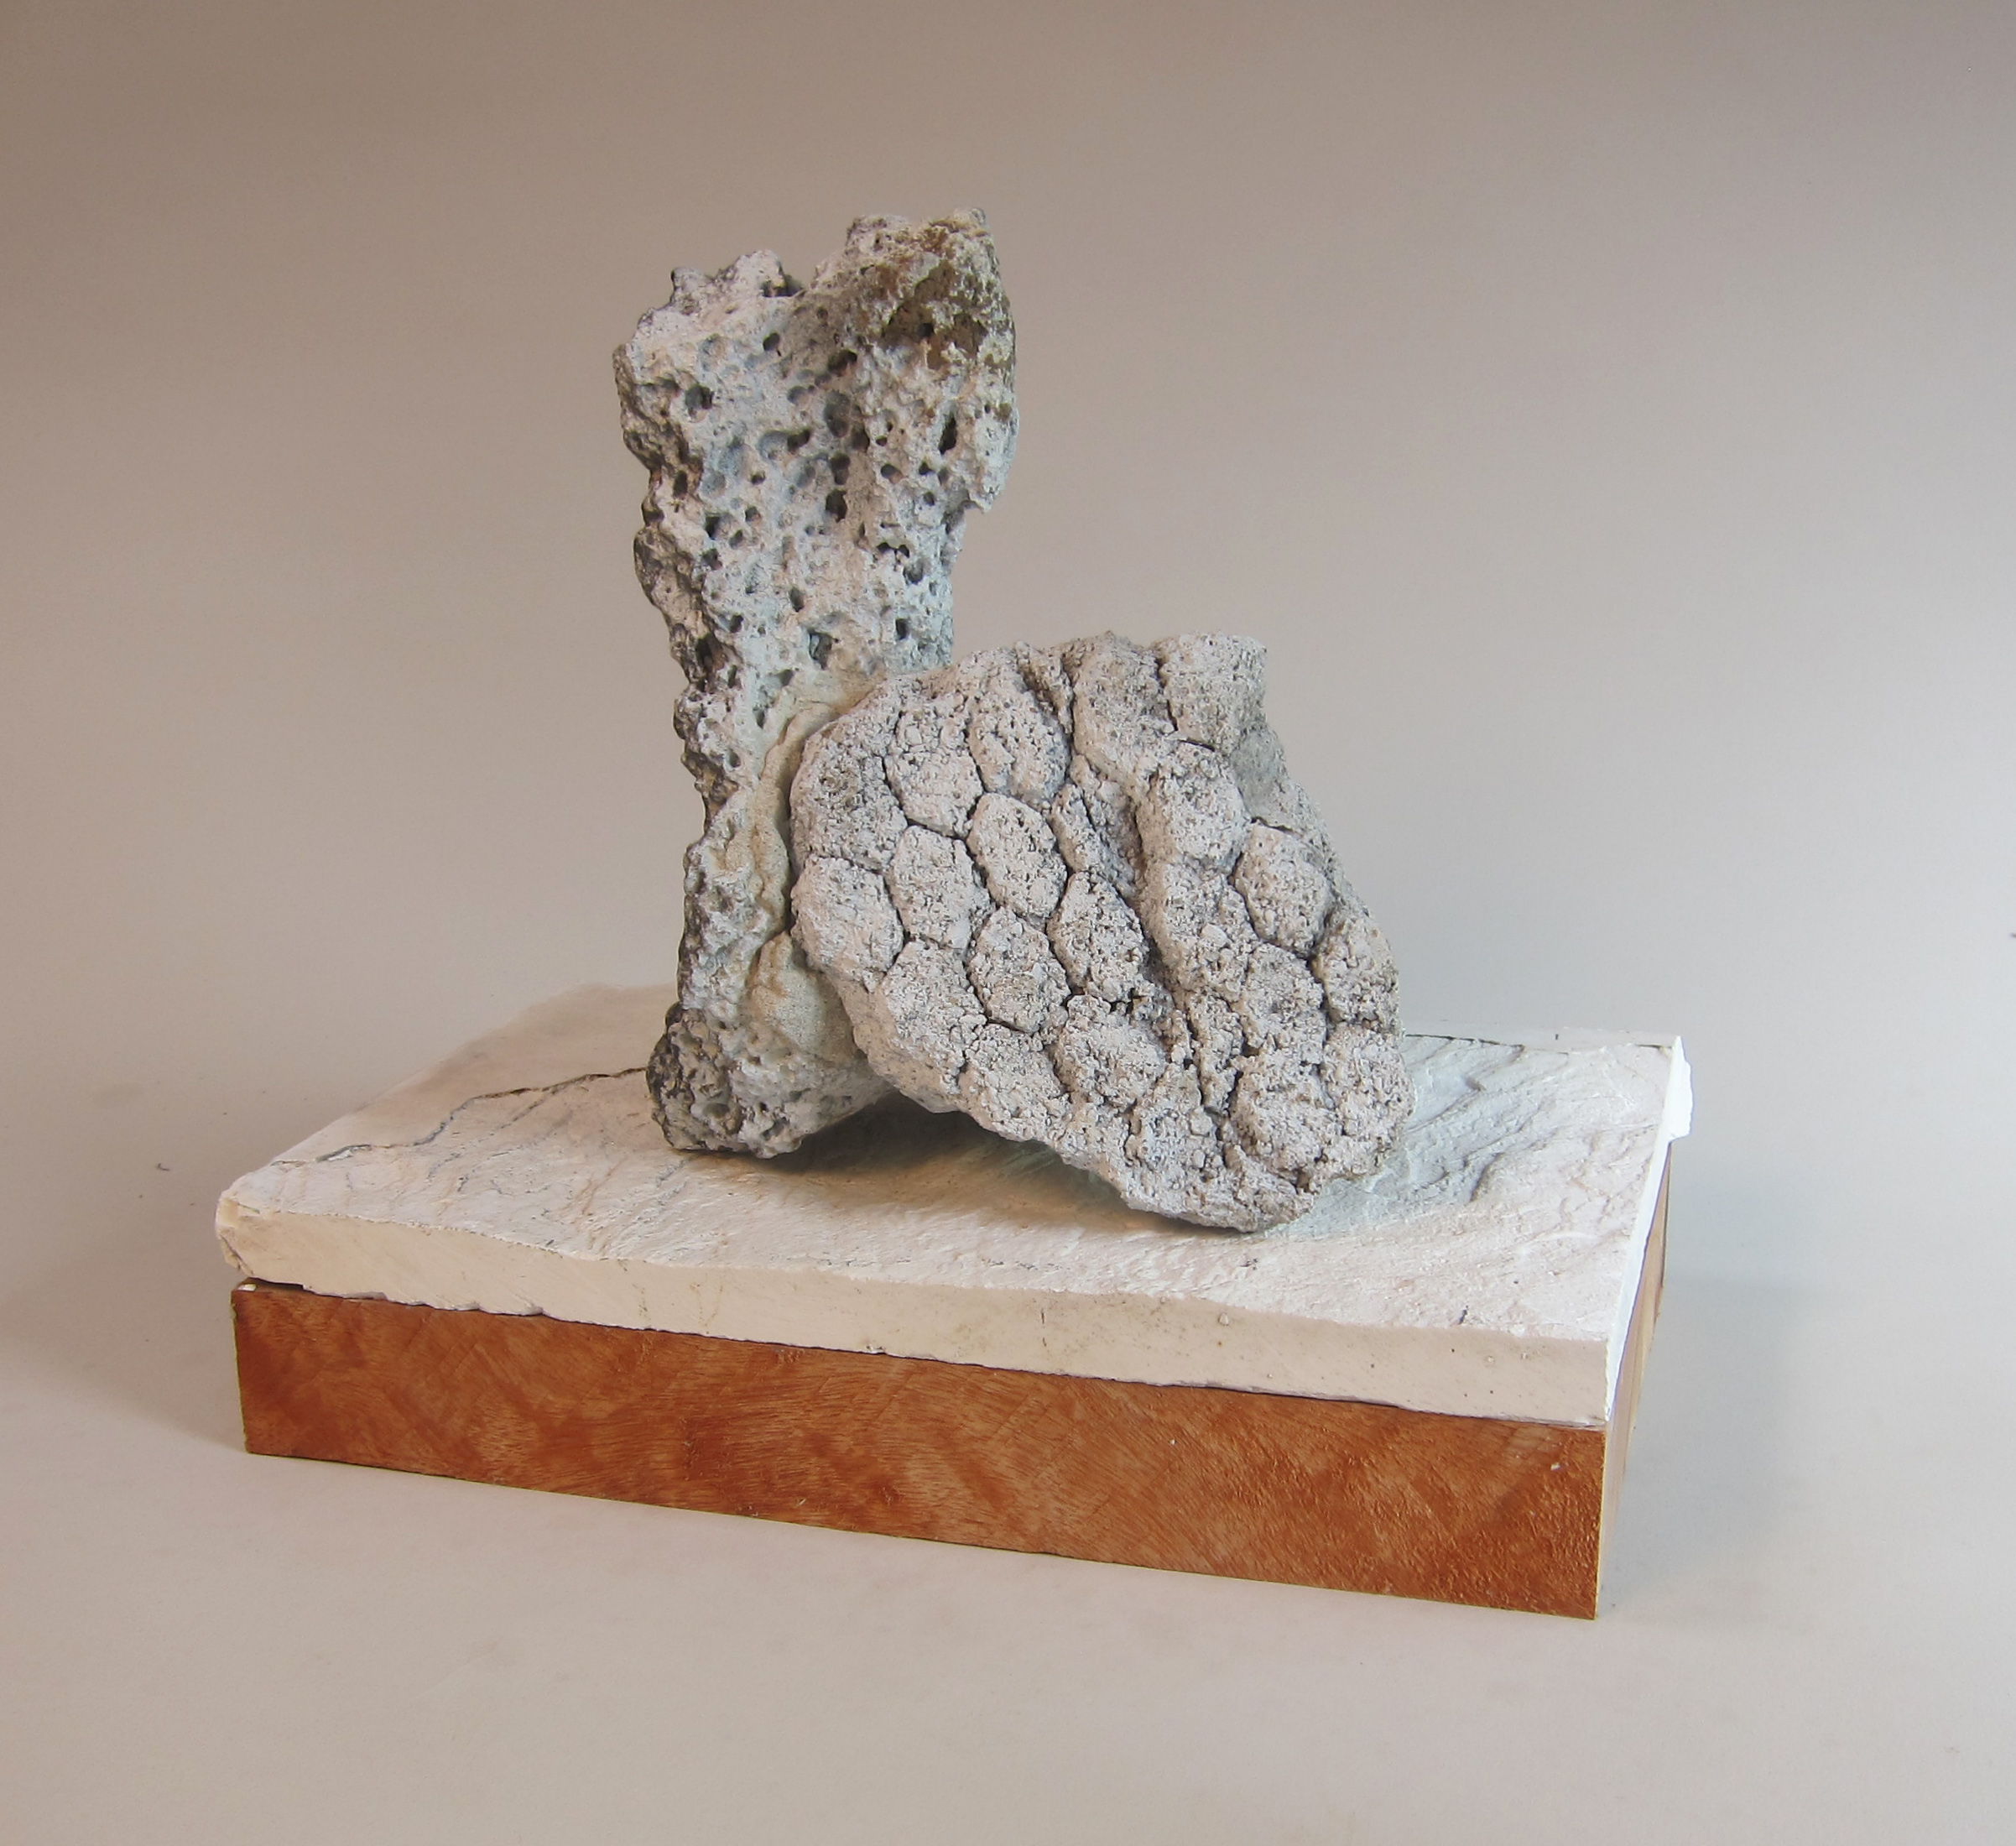 Volcanic stone, concrete rubble, plaster, wood enamel paint